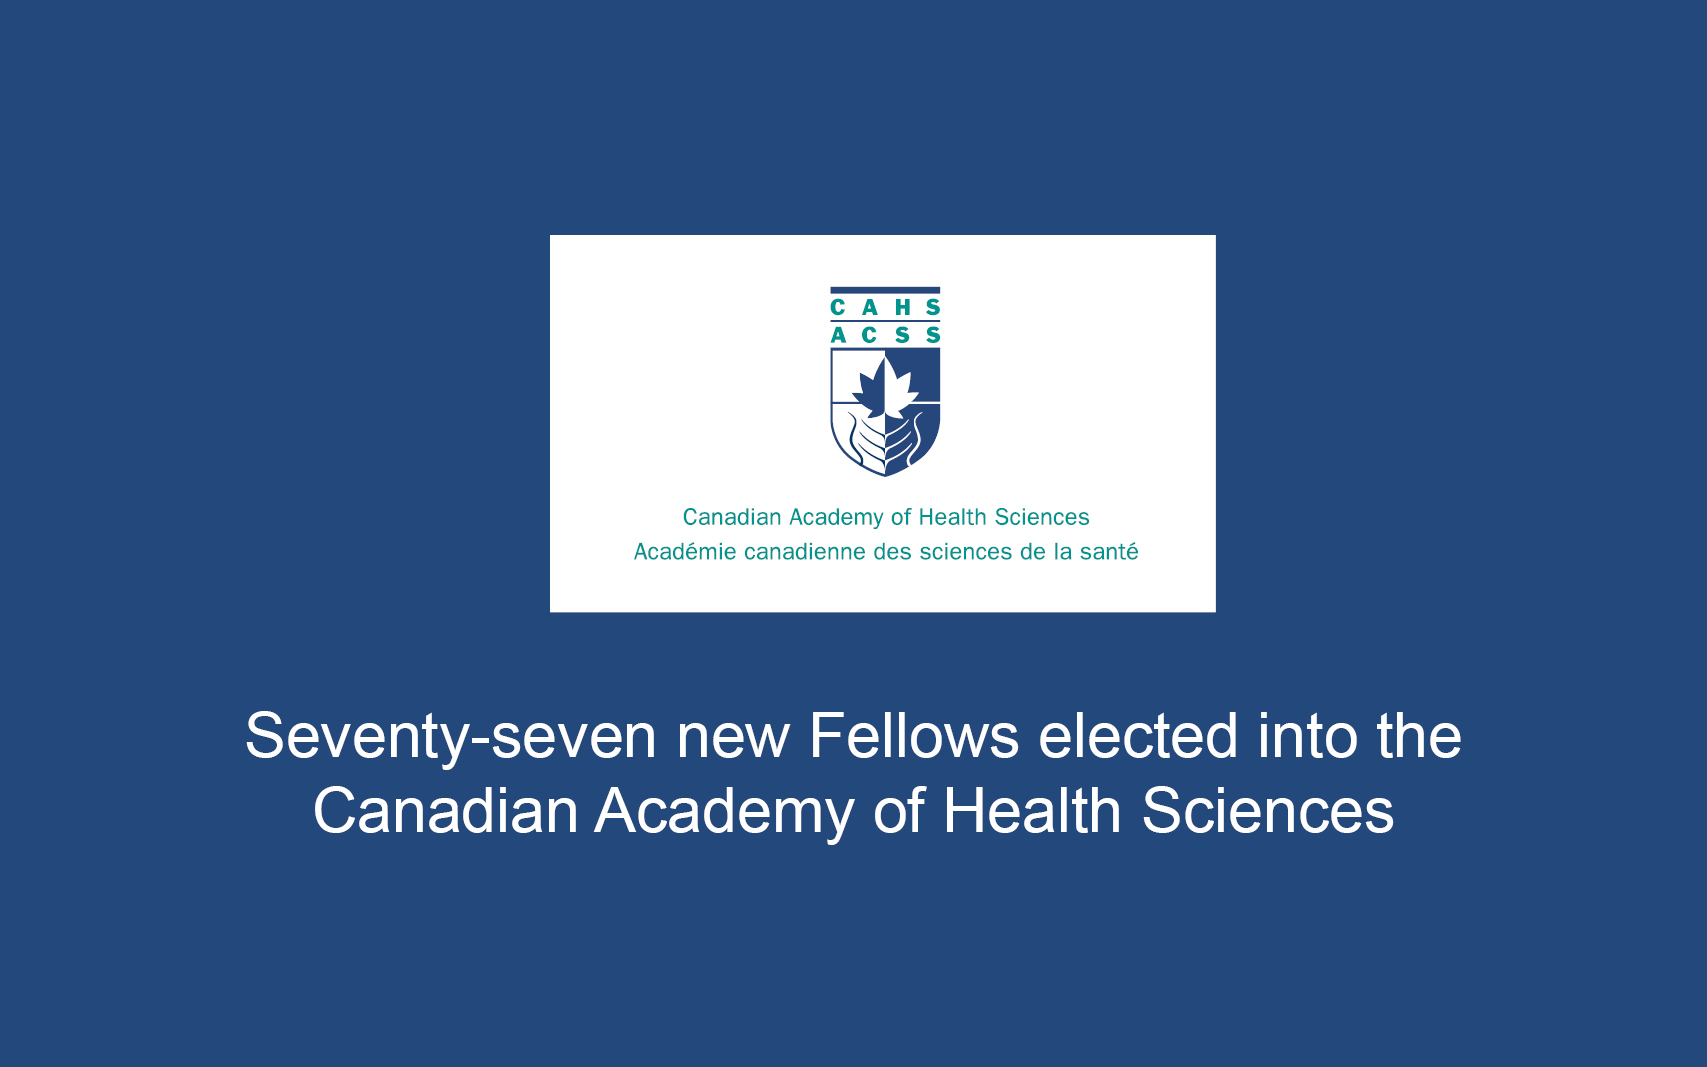 Seventy-seven new Fellows elected into the Canadian Academy of Health Sciences